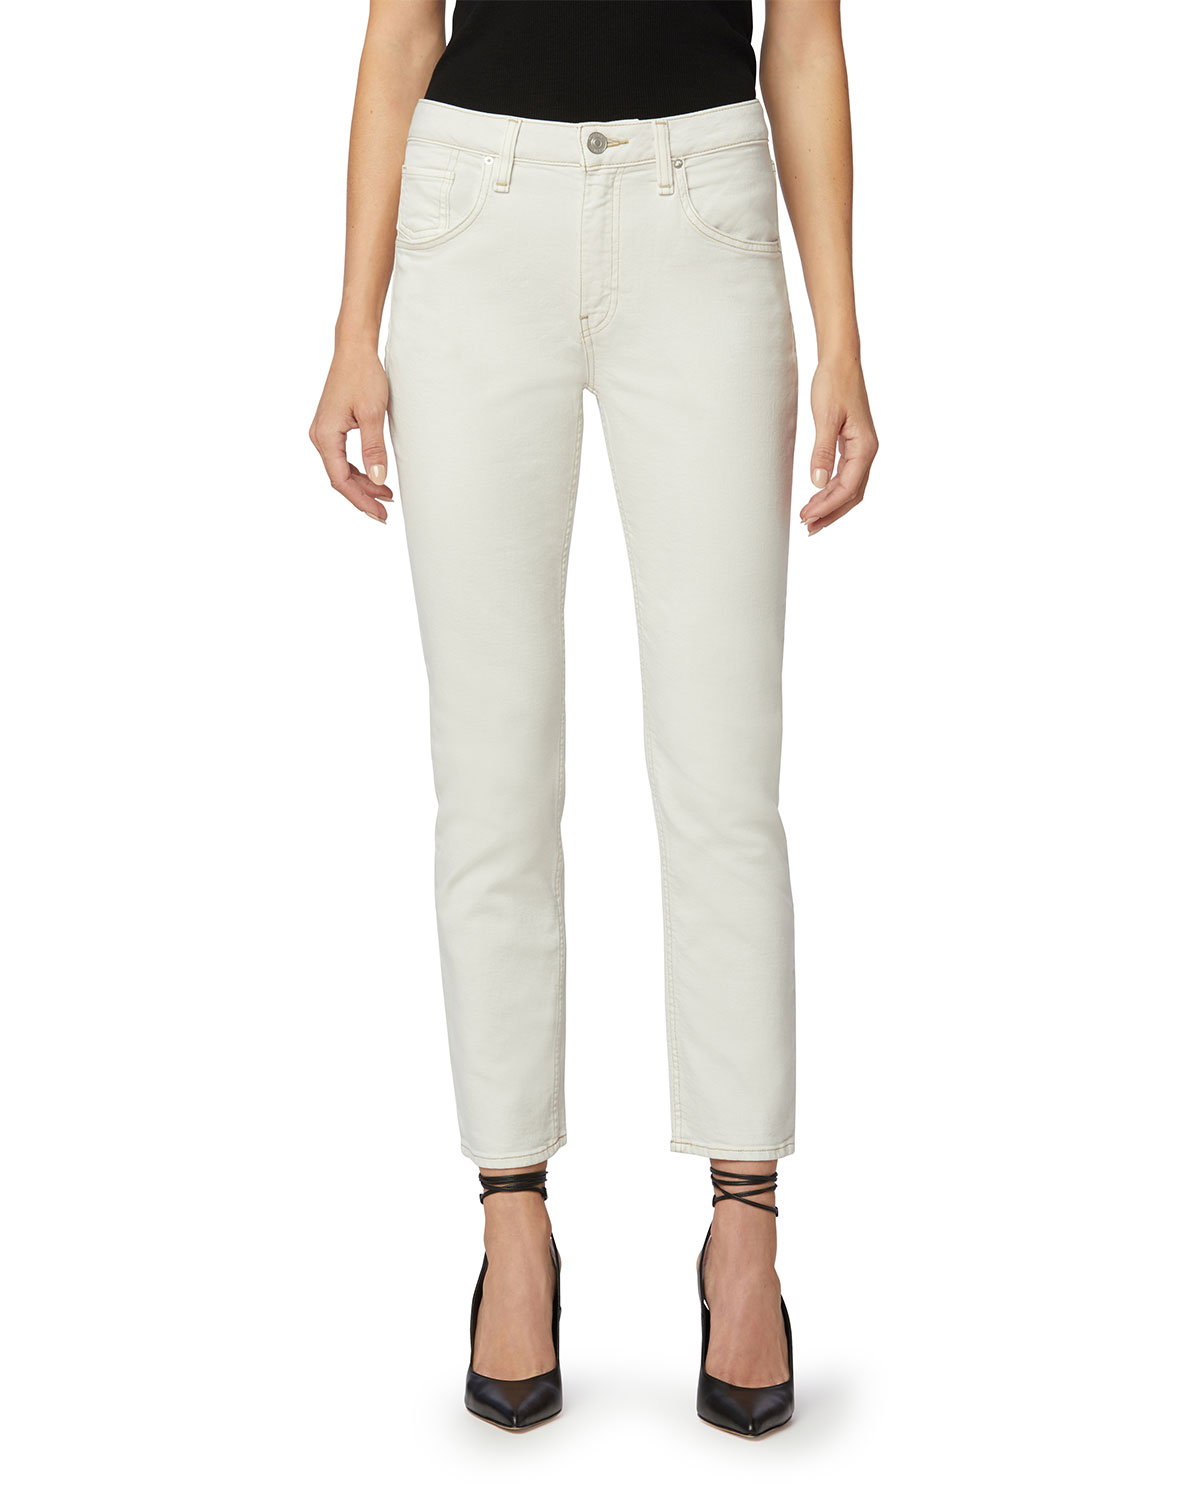 Iona High-Rise Straight Jeans with Flap Pockets